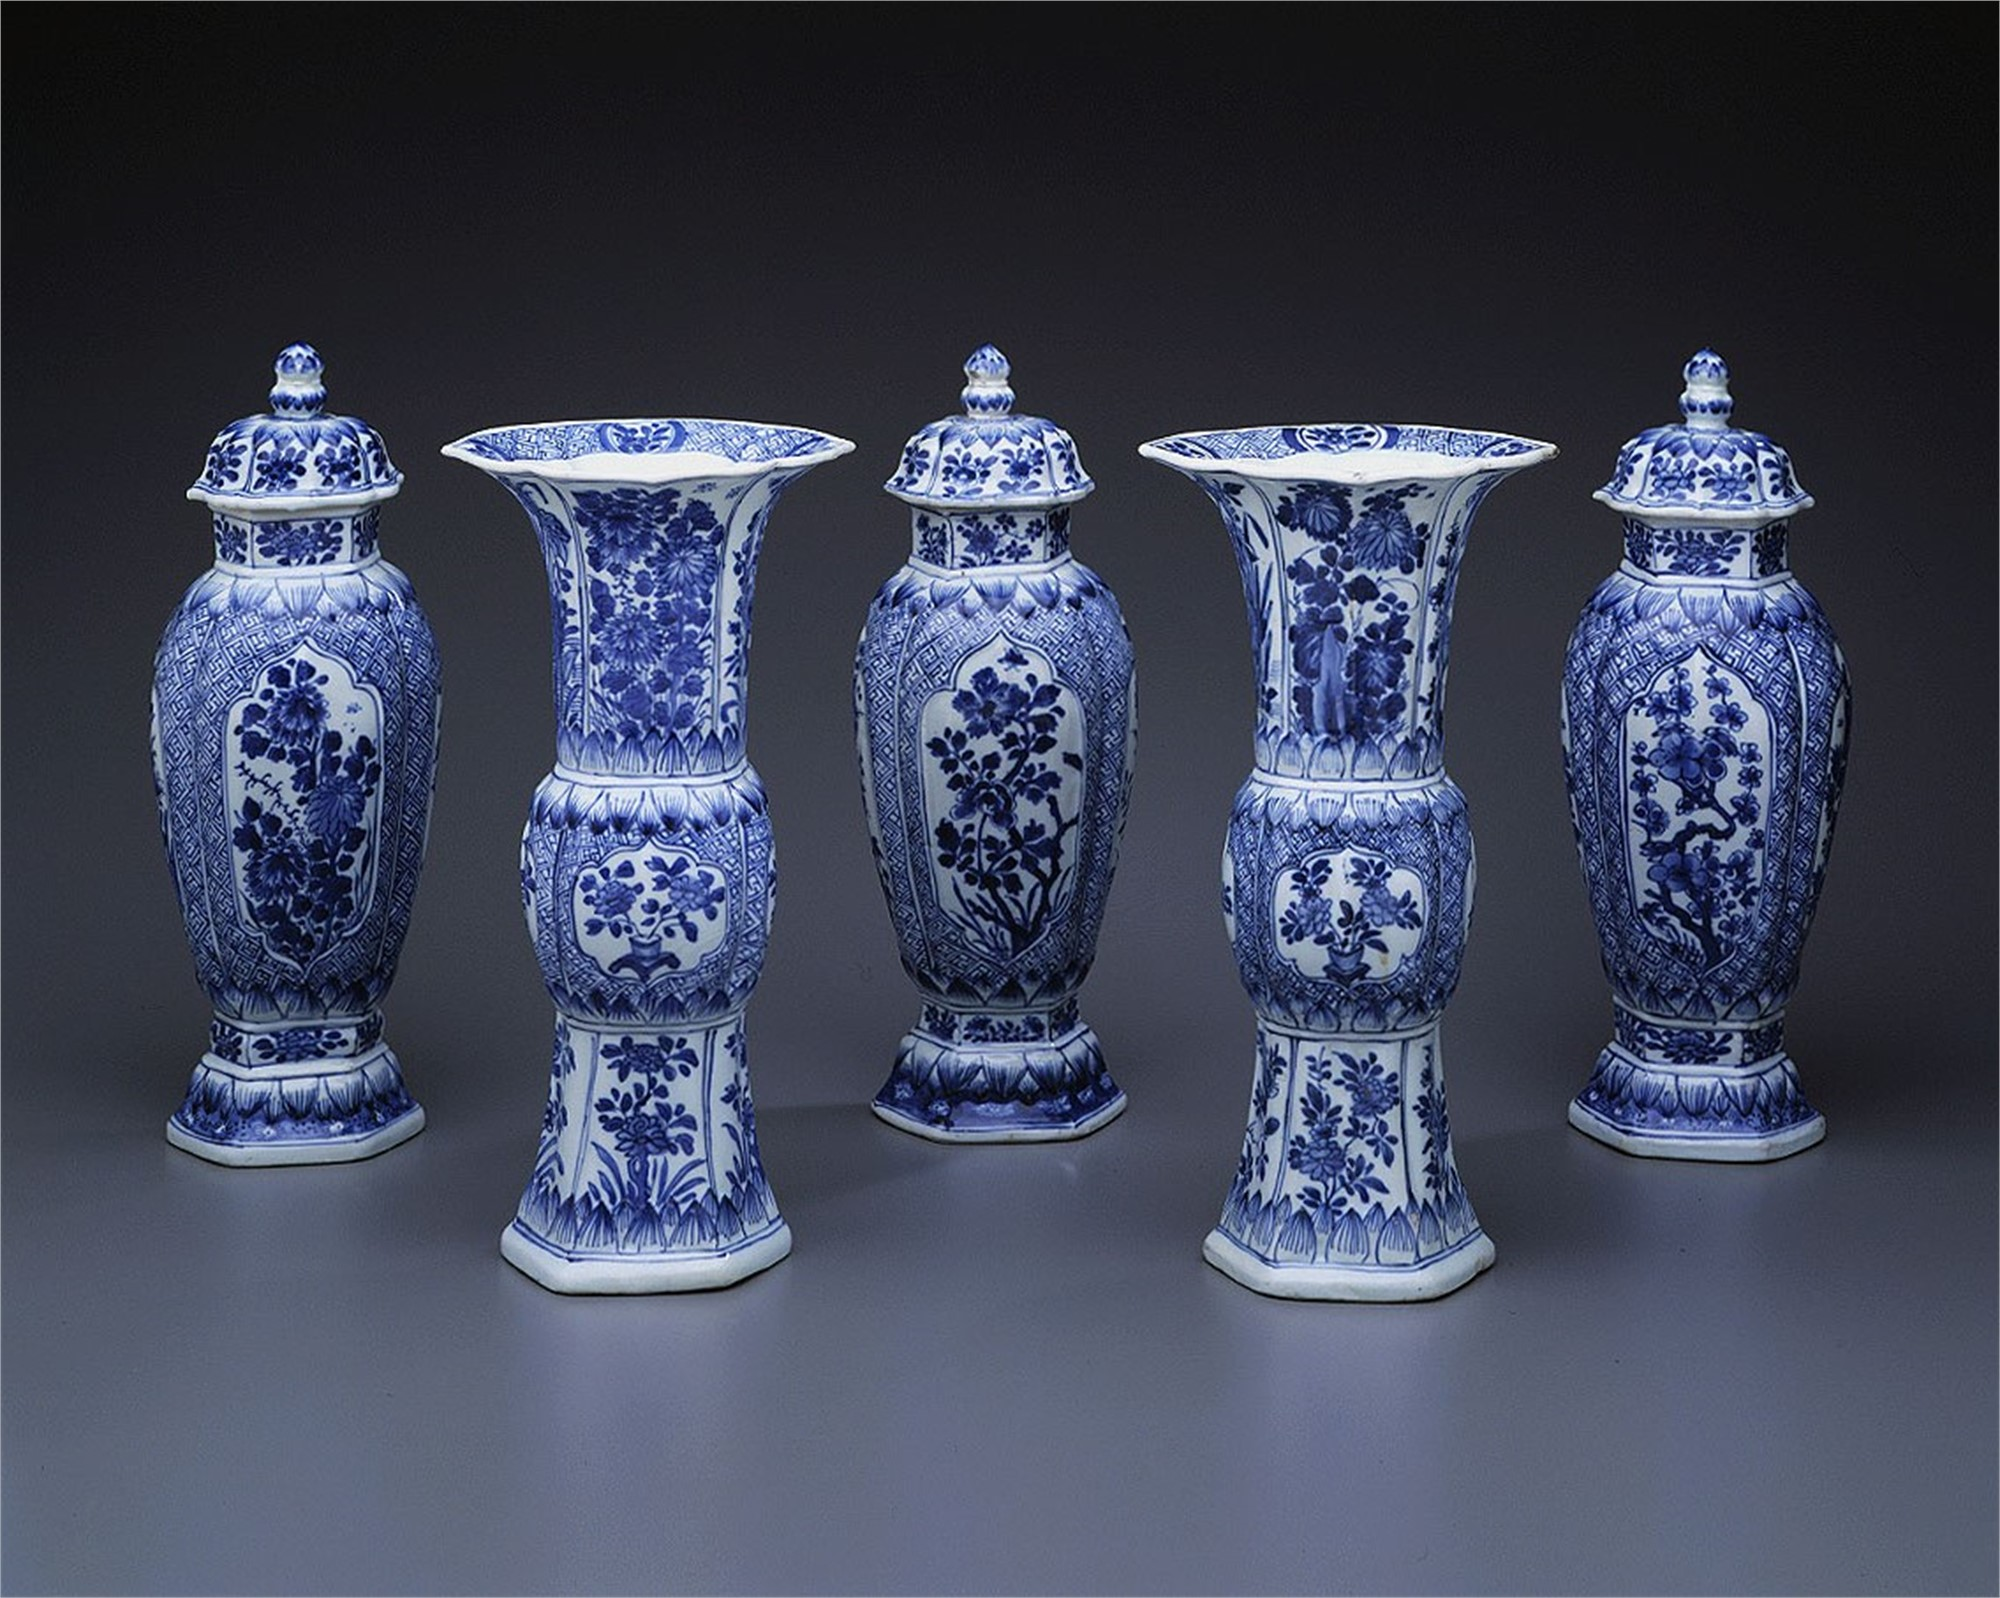 FIVE PIECE BLUE AND WHITE GARNITURE WITH FLORAL PANELS